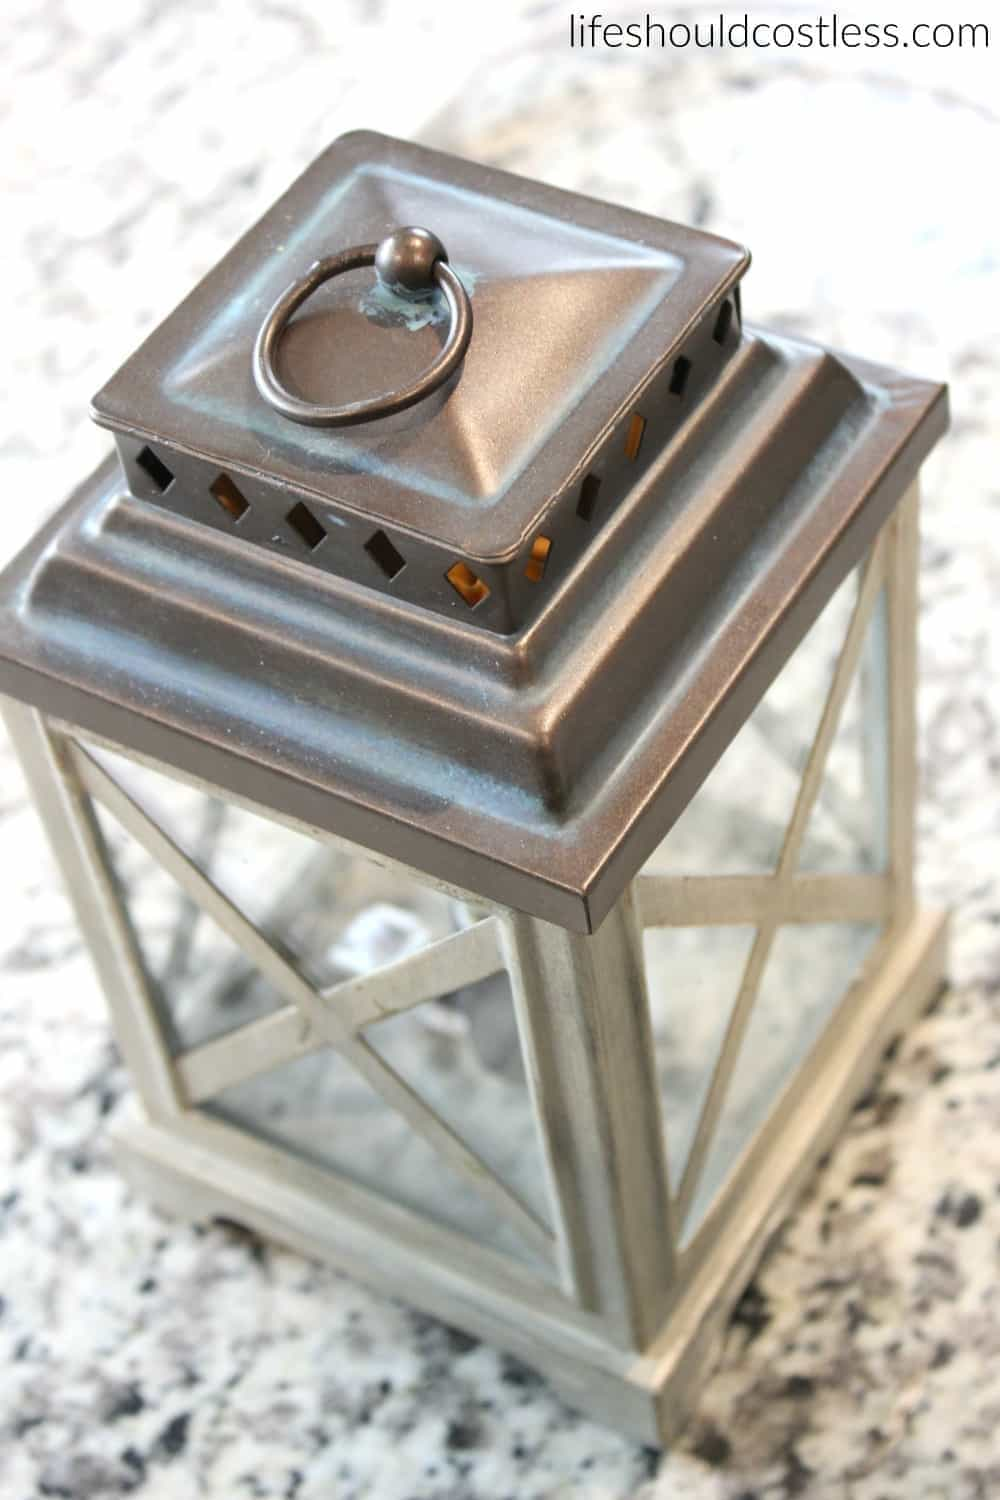 The Wax Warmer Hack That Will Change